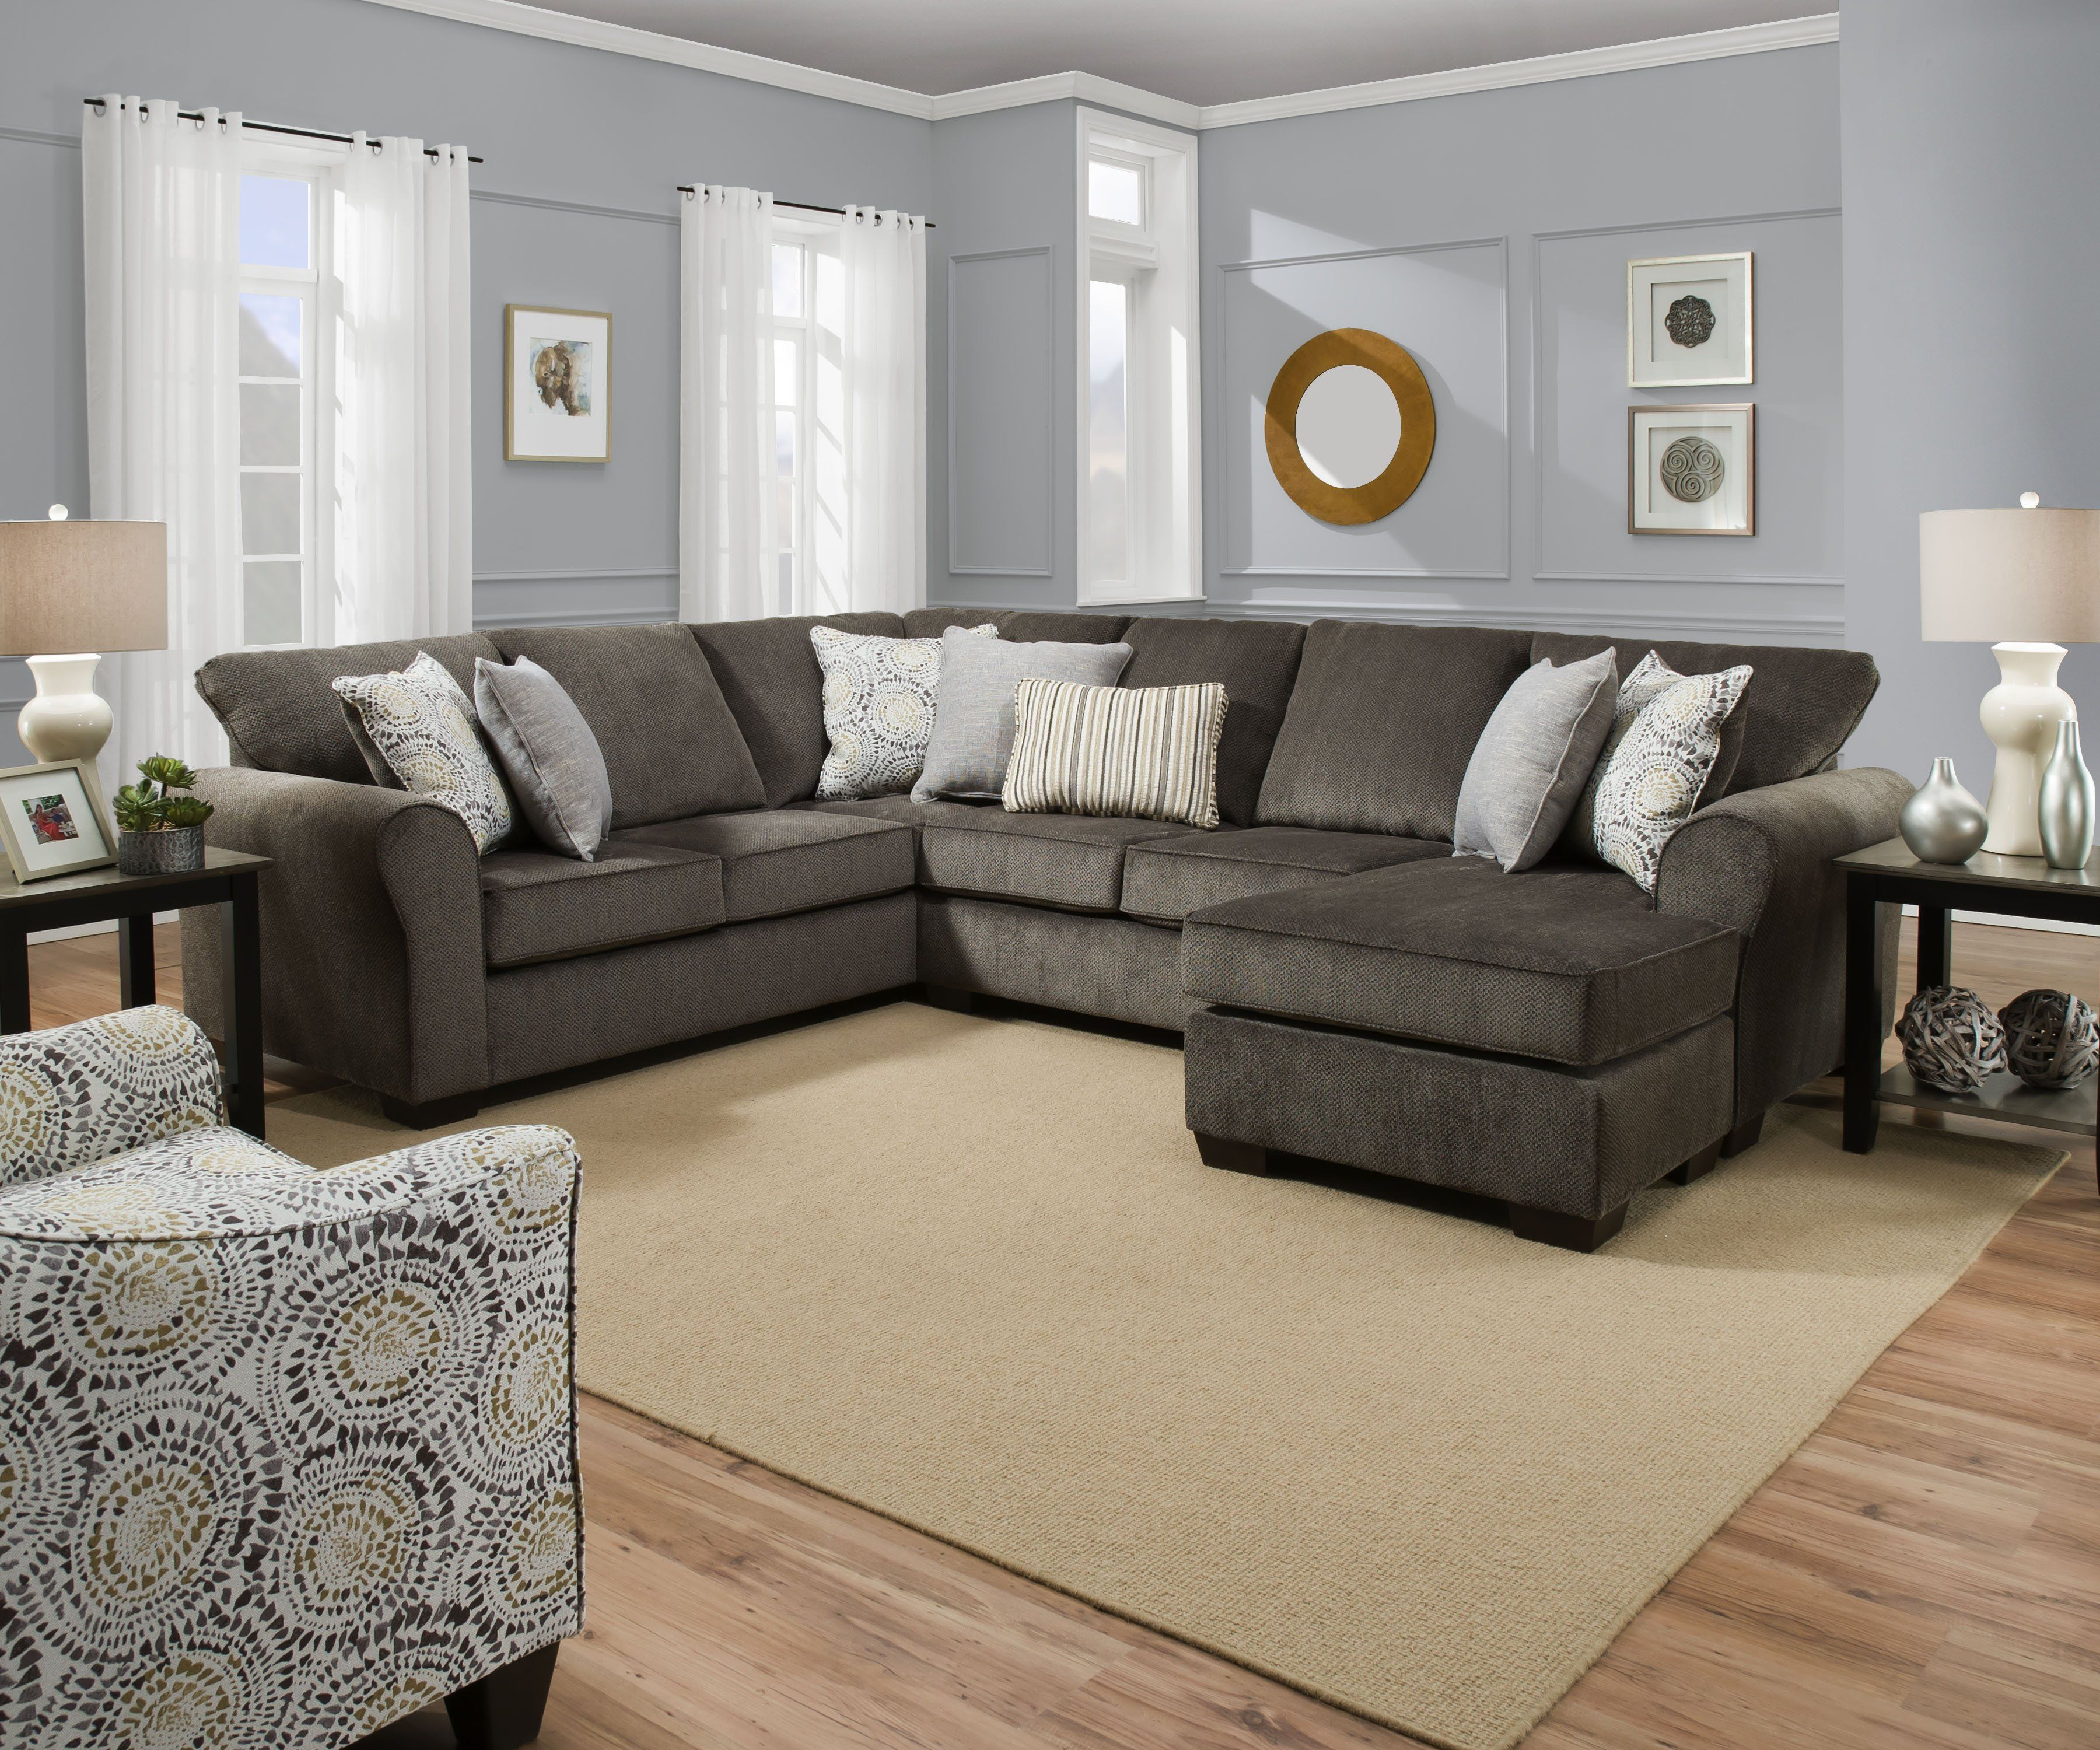 Sofa Sectionals For Sale Near Me In 2020